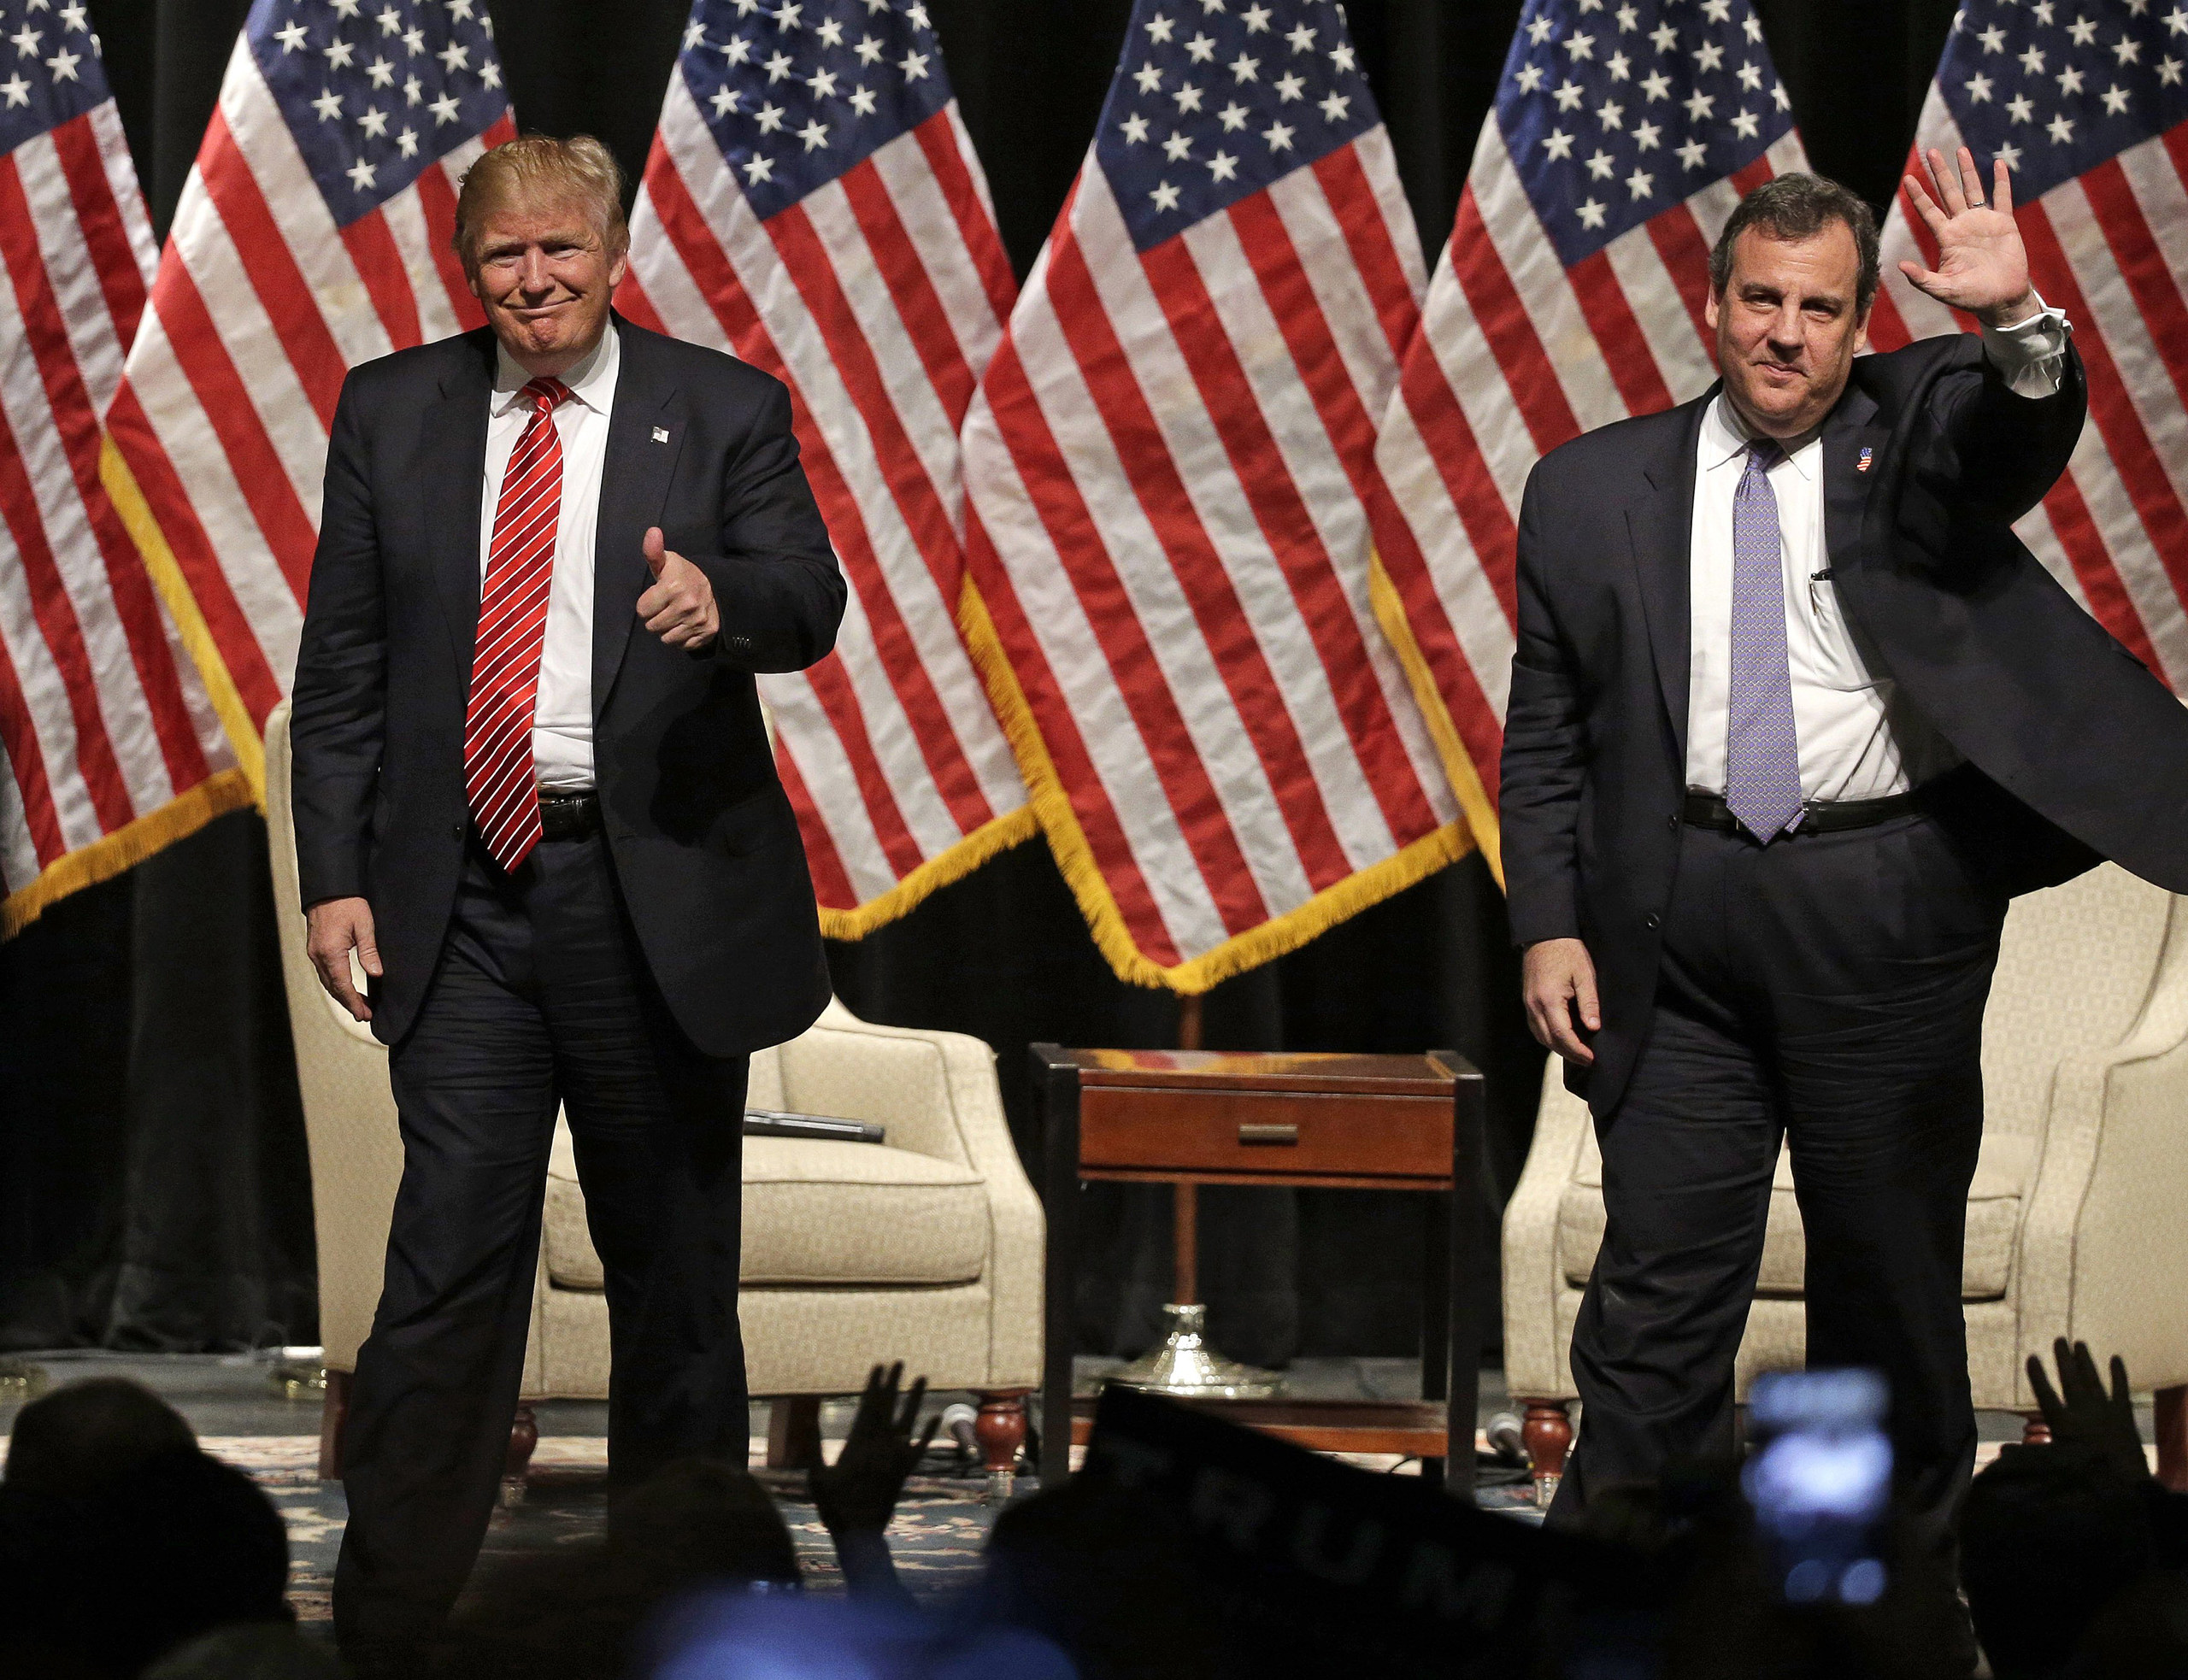 Donald Trump gives a thumbs up as New Jersey Gov. Chris Christie waves to the crowd as they walk off the stage after a rally at Lenoir-Rhyne University in Hickory, N.C., March 14, 2016.